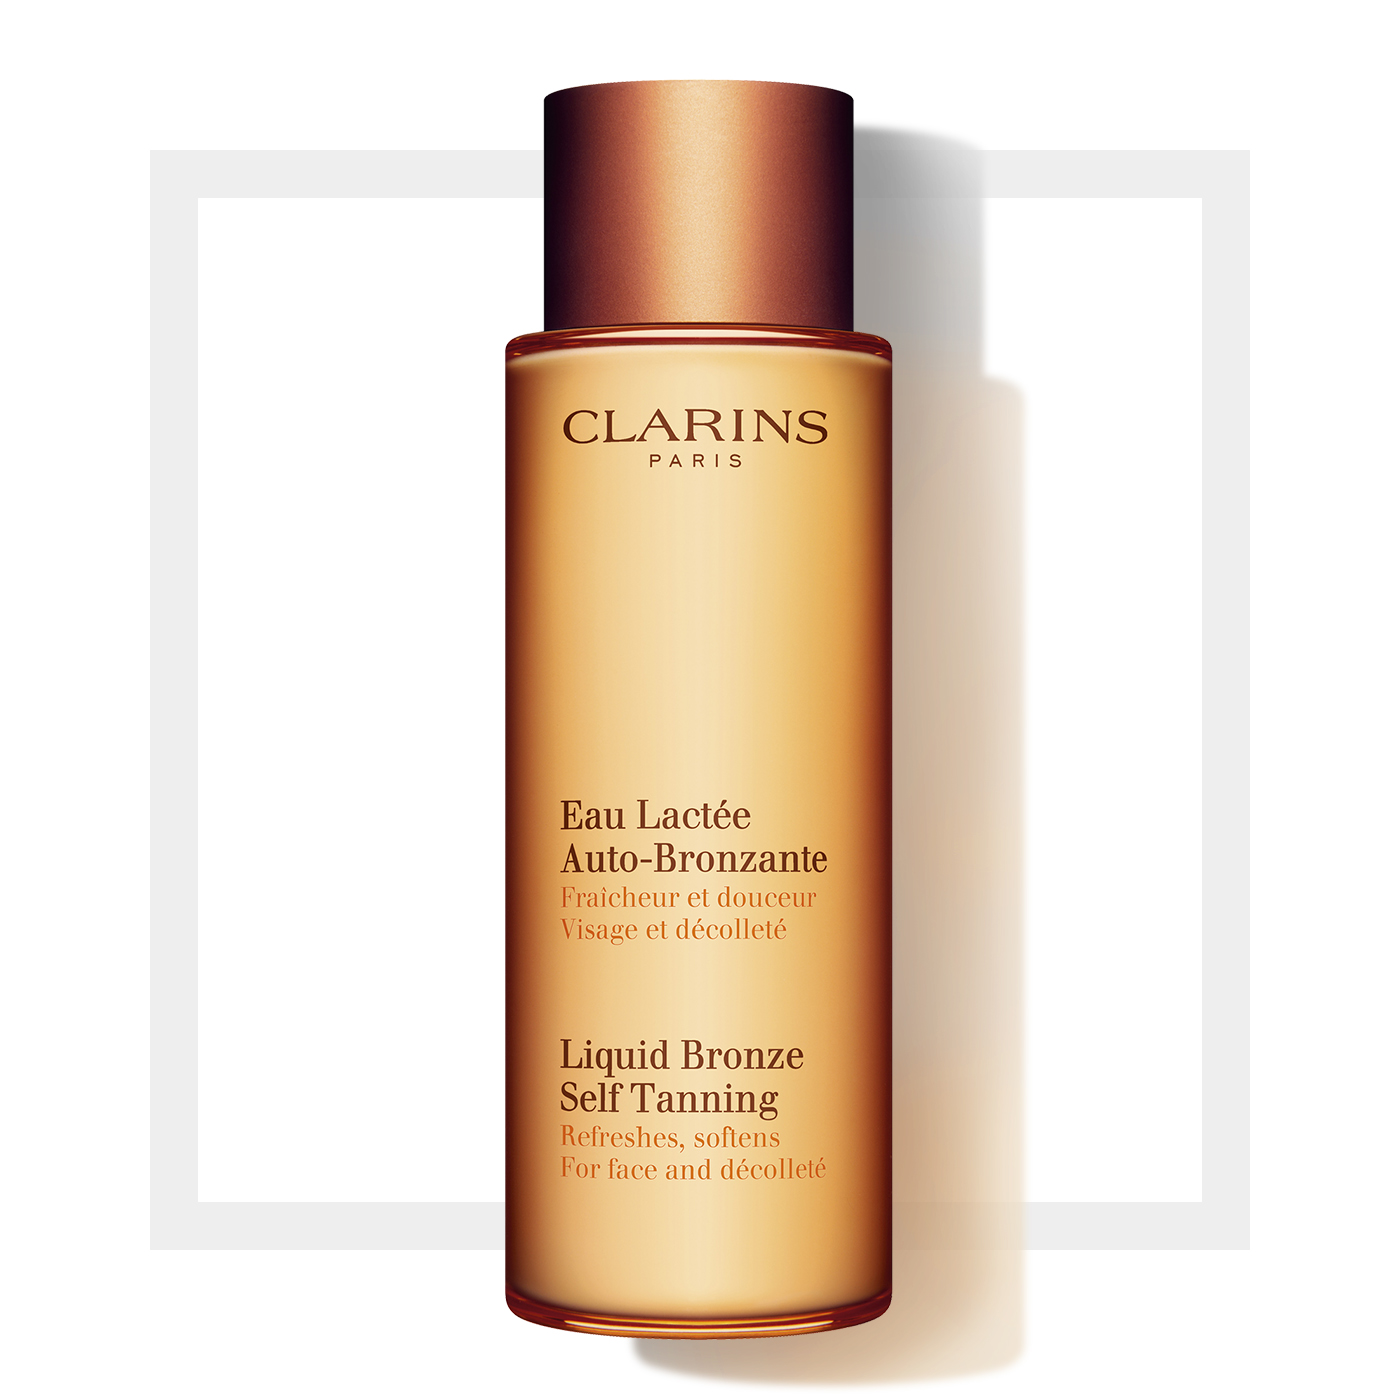 eau lact e auto bronzante effet bonne mine autobronzant clarins. Black Bedroom Furniture Sets. Home Design Ideas